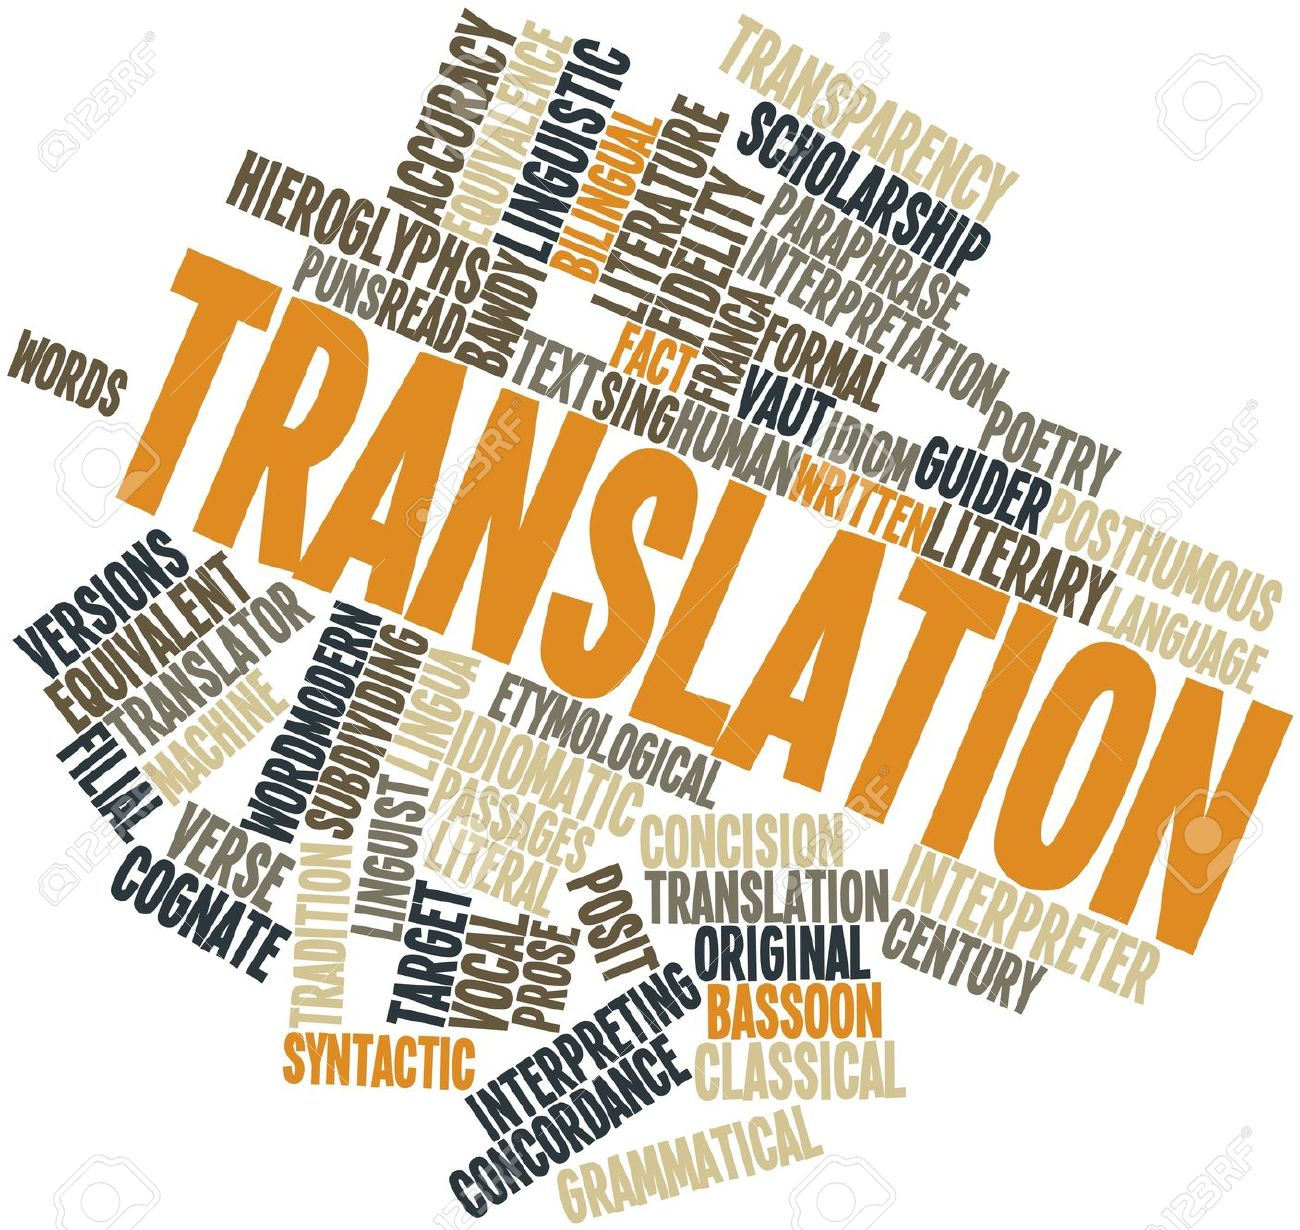 translate for you.